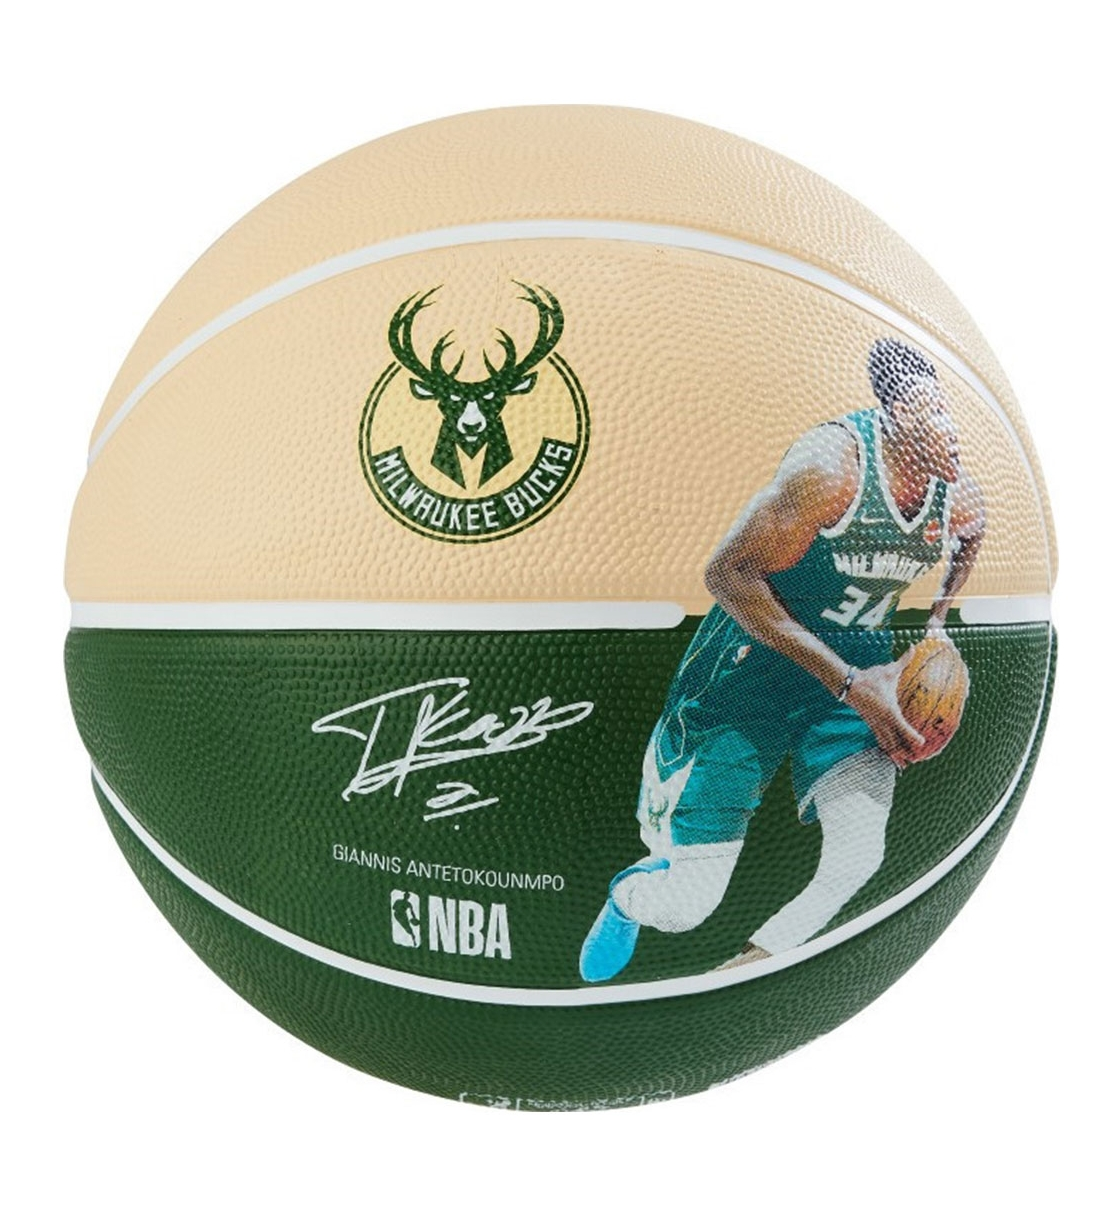 Spalding Μπάλα Basket Fw19 New Nba Player Bucks Giannis Antetokounmpo 83-836Z1